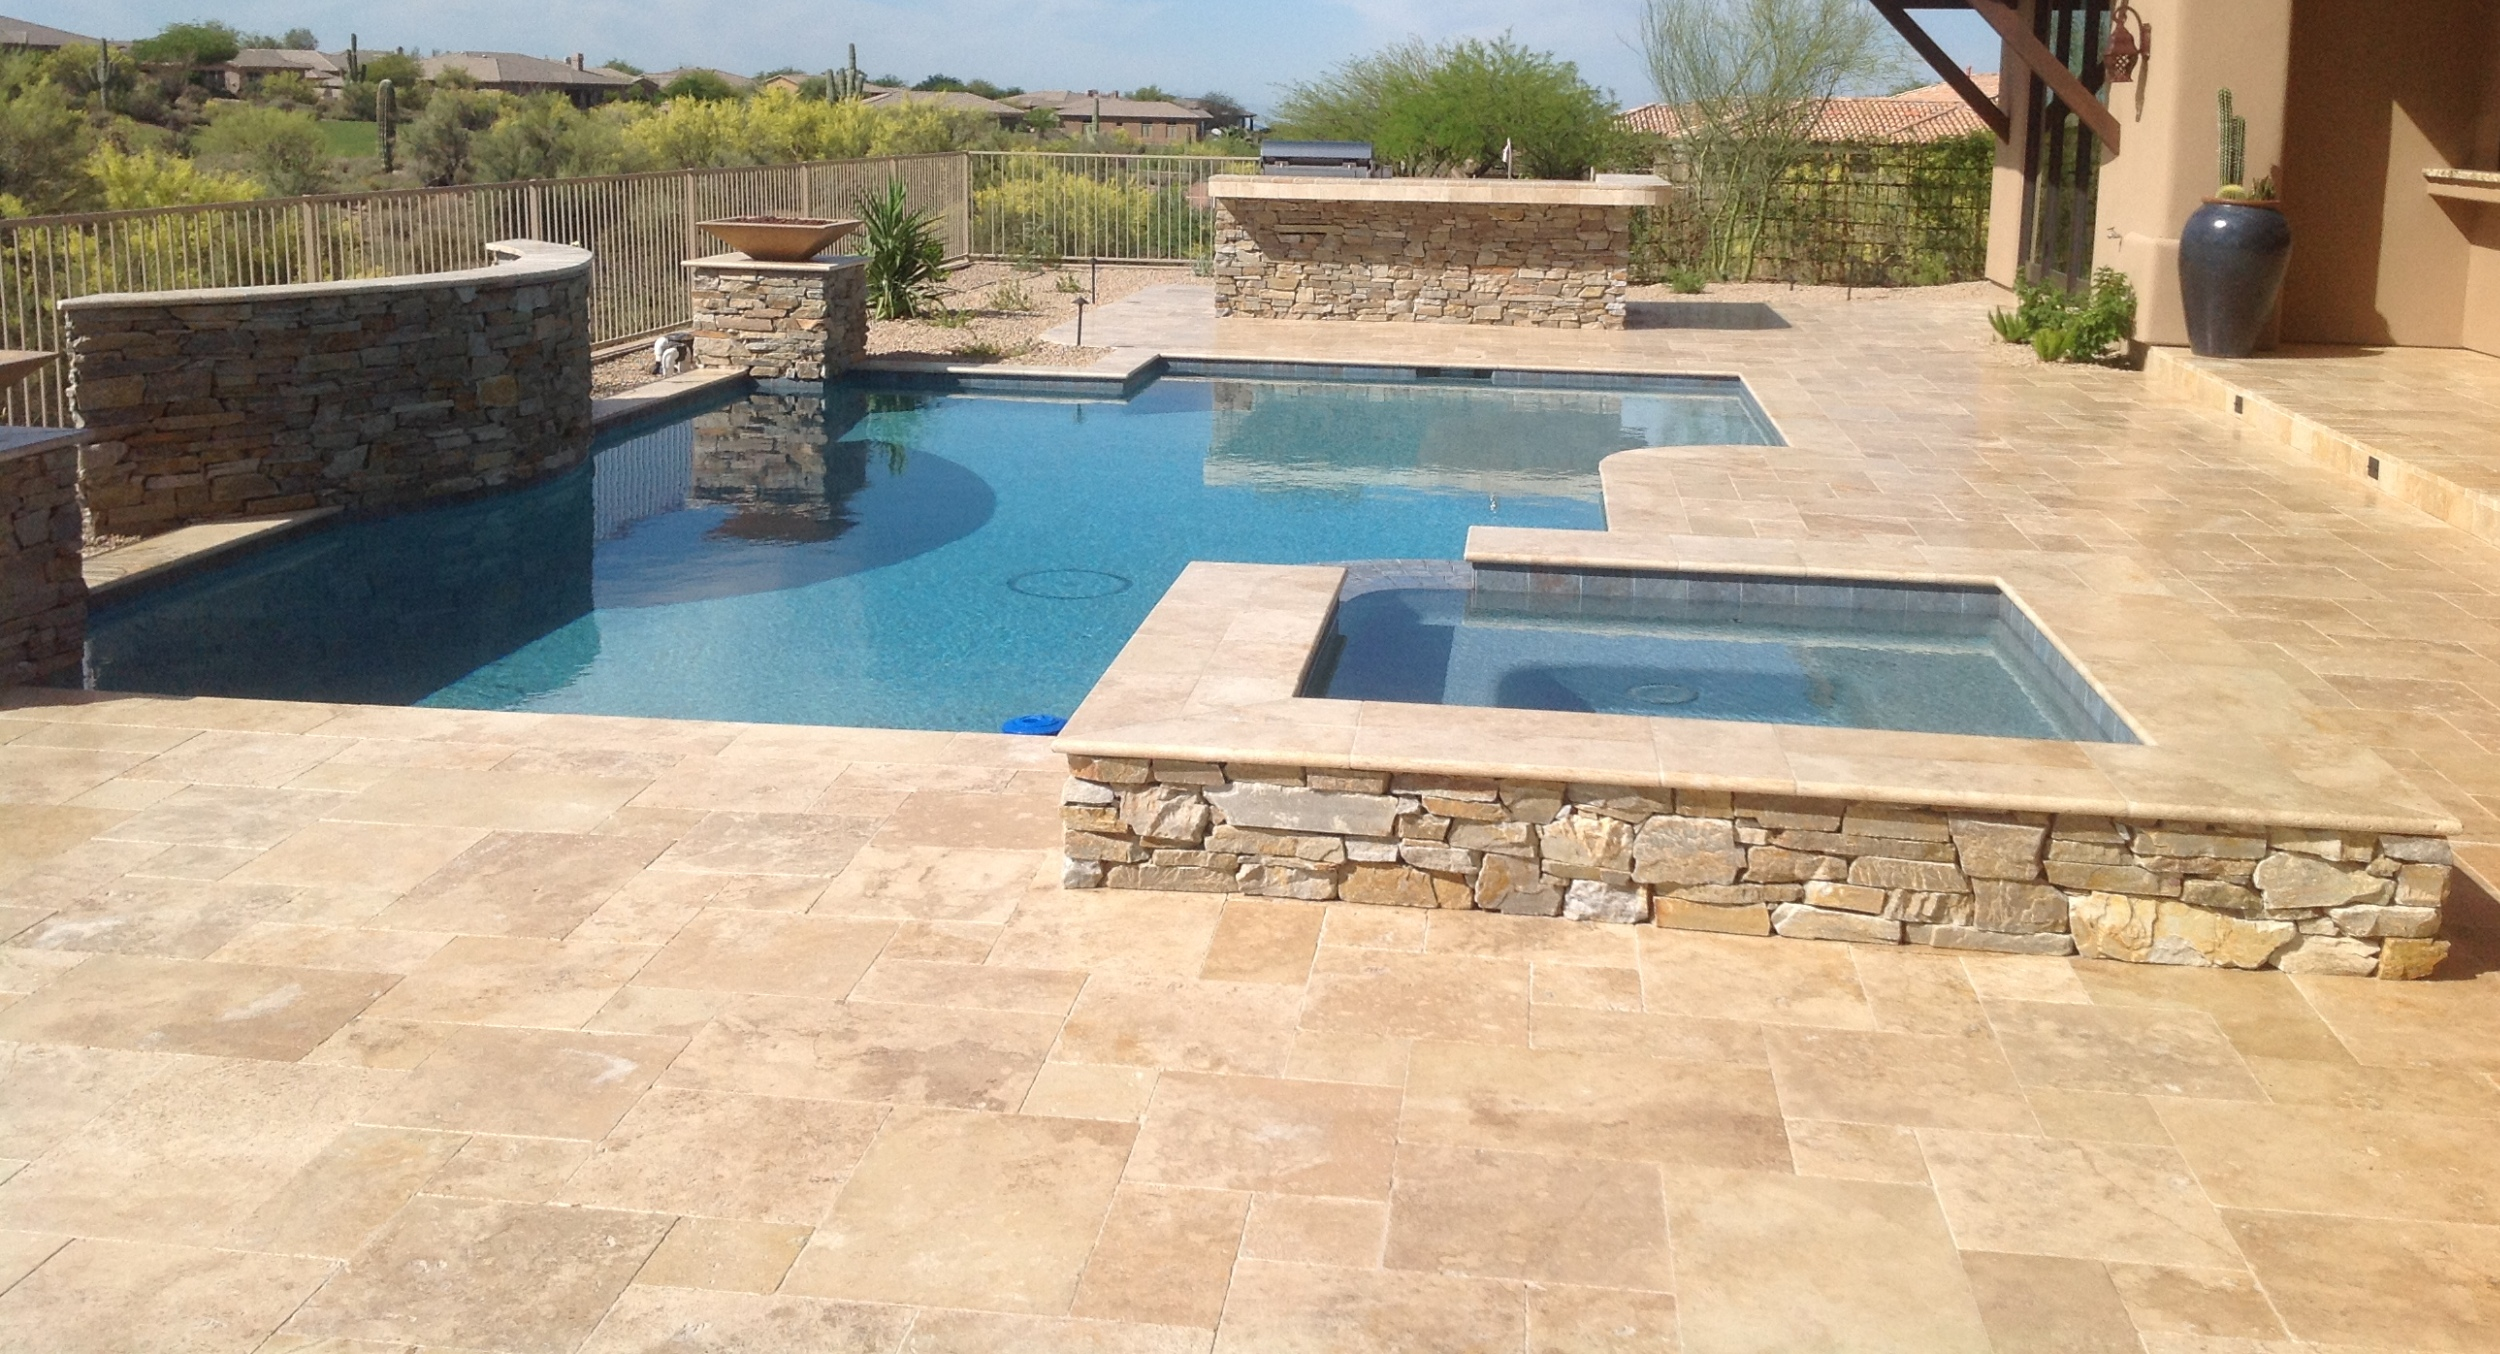 You've got lots of options for pool decking, Scottsdale, like this gorgeous golden travertine in this image. We do tile, stone, and pavers on all our Scottsdale - Phoenix pool decks.T